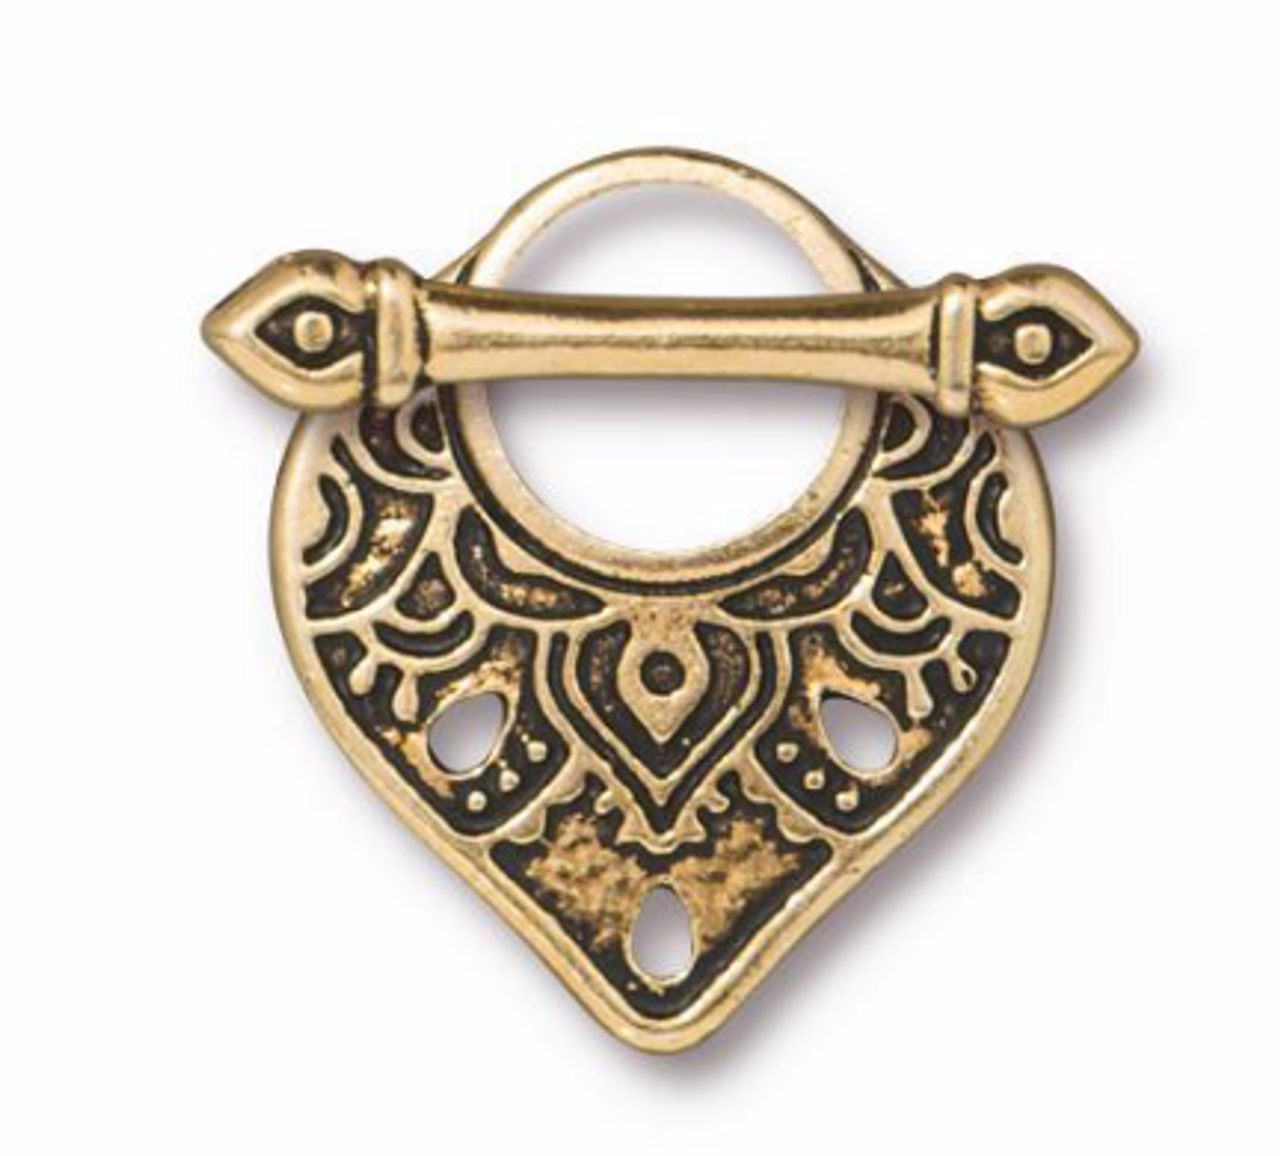 Temple Toggle Clasp Gold Plated - 1 Set